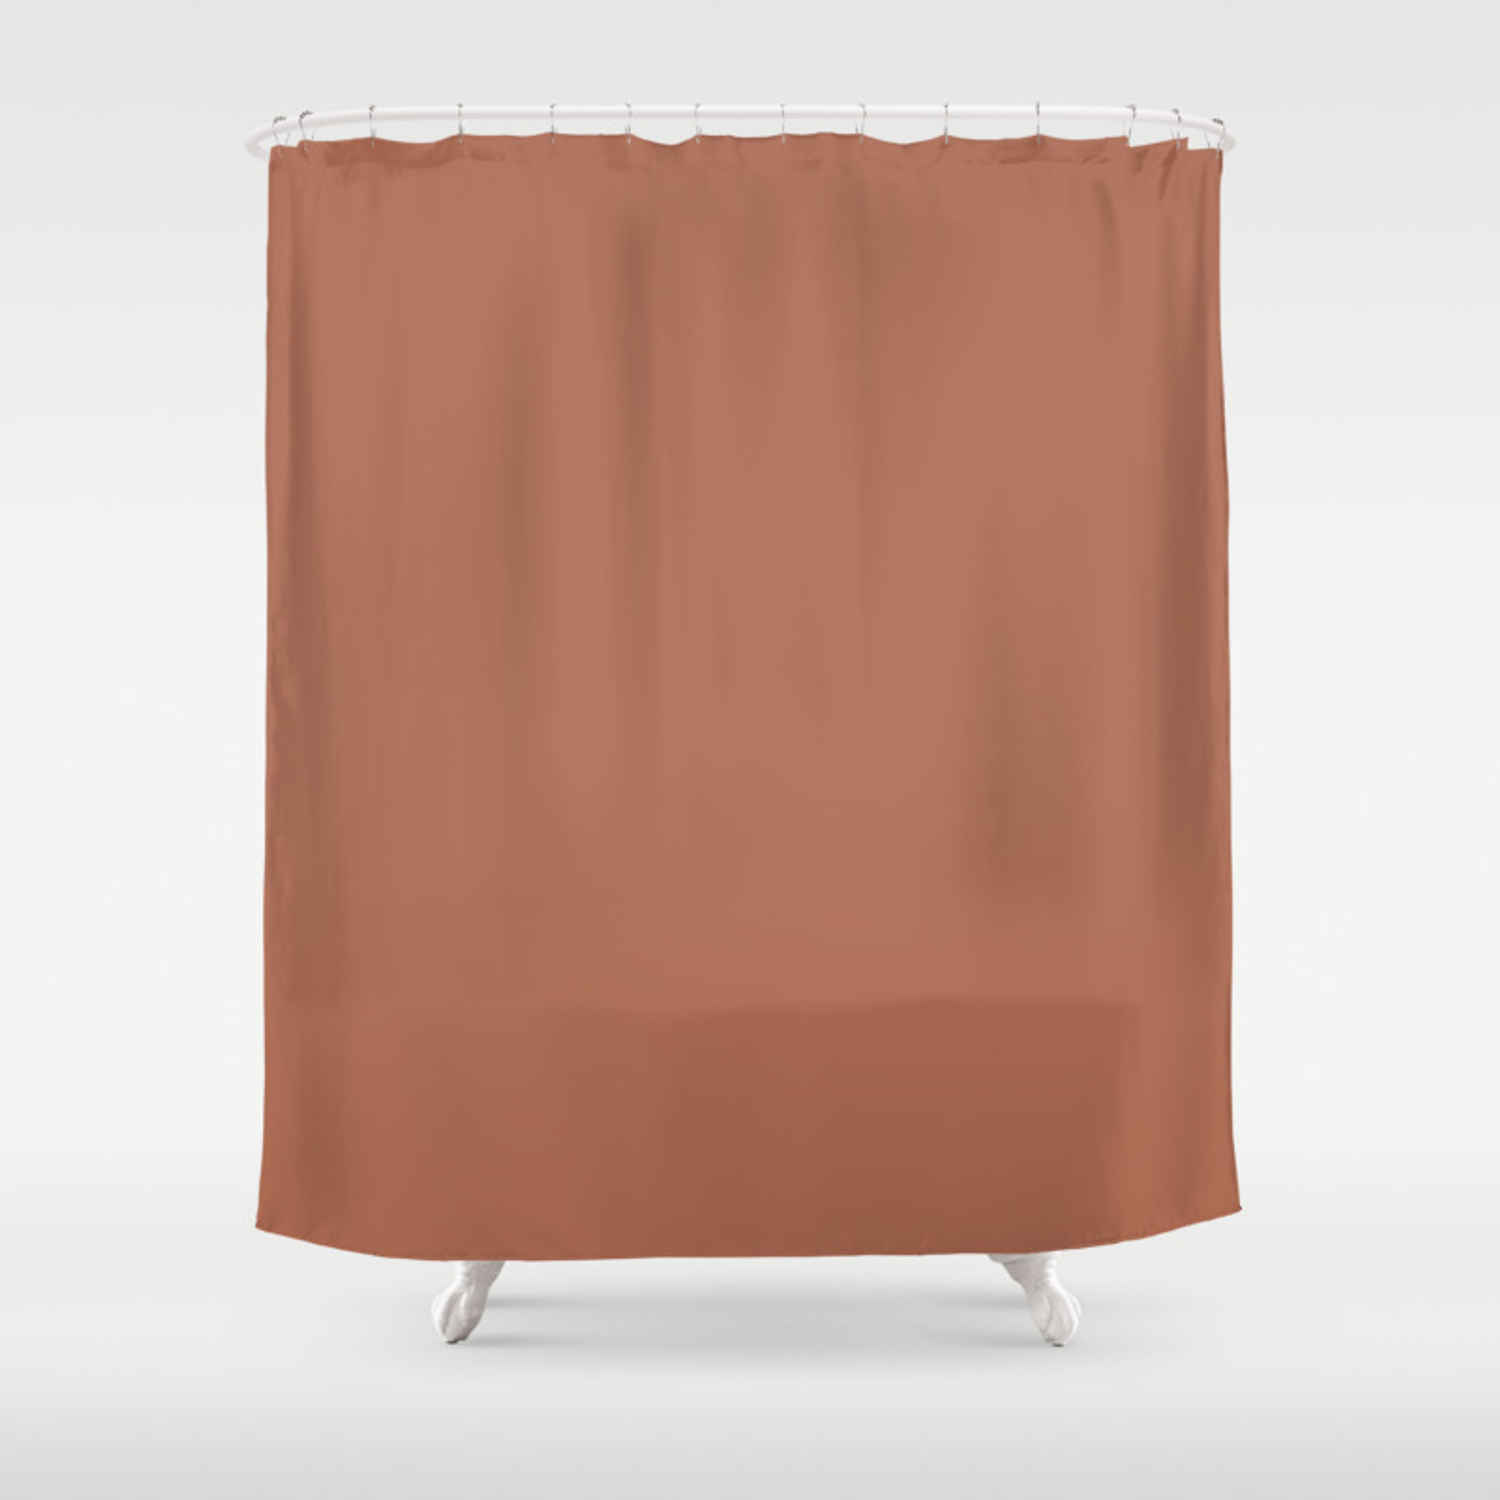 Sherwin Williams Color Of The Year 2019 Cavern Clay Sw 7701 Solid Color Shower Curtain By Simplysolids Society6